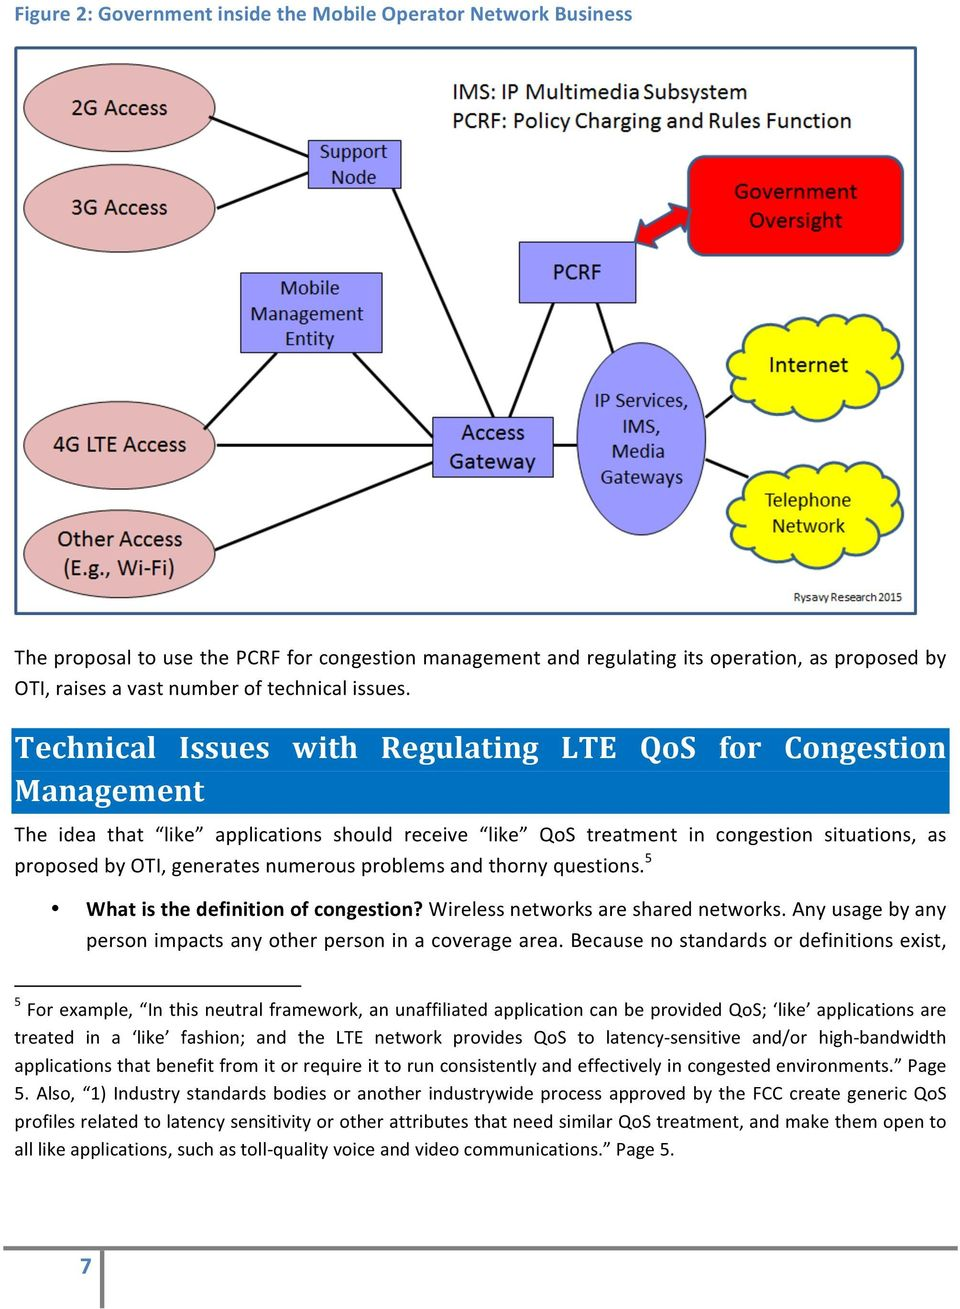 Technical Issues with Regulating LTE QoS for Congestion Management The idea that like applications should receive like QoS treatment in congestion situations, as proposed by OTI, generates numerous